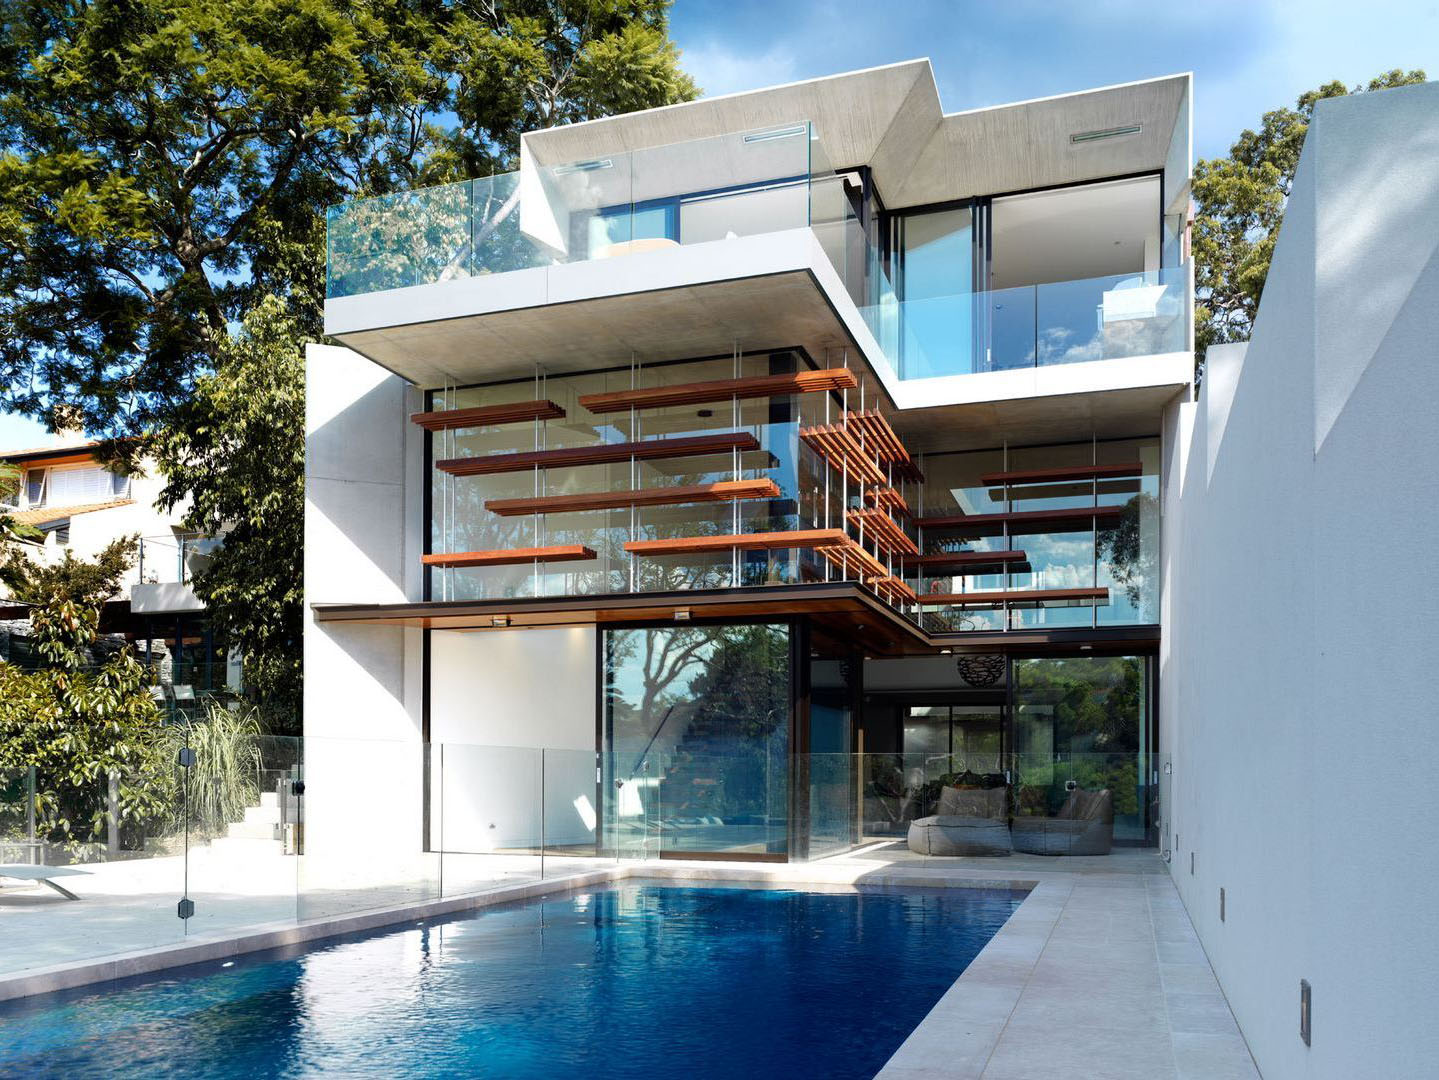 Architecturally stunning contemporary house in sydney this beautifully designed modern home